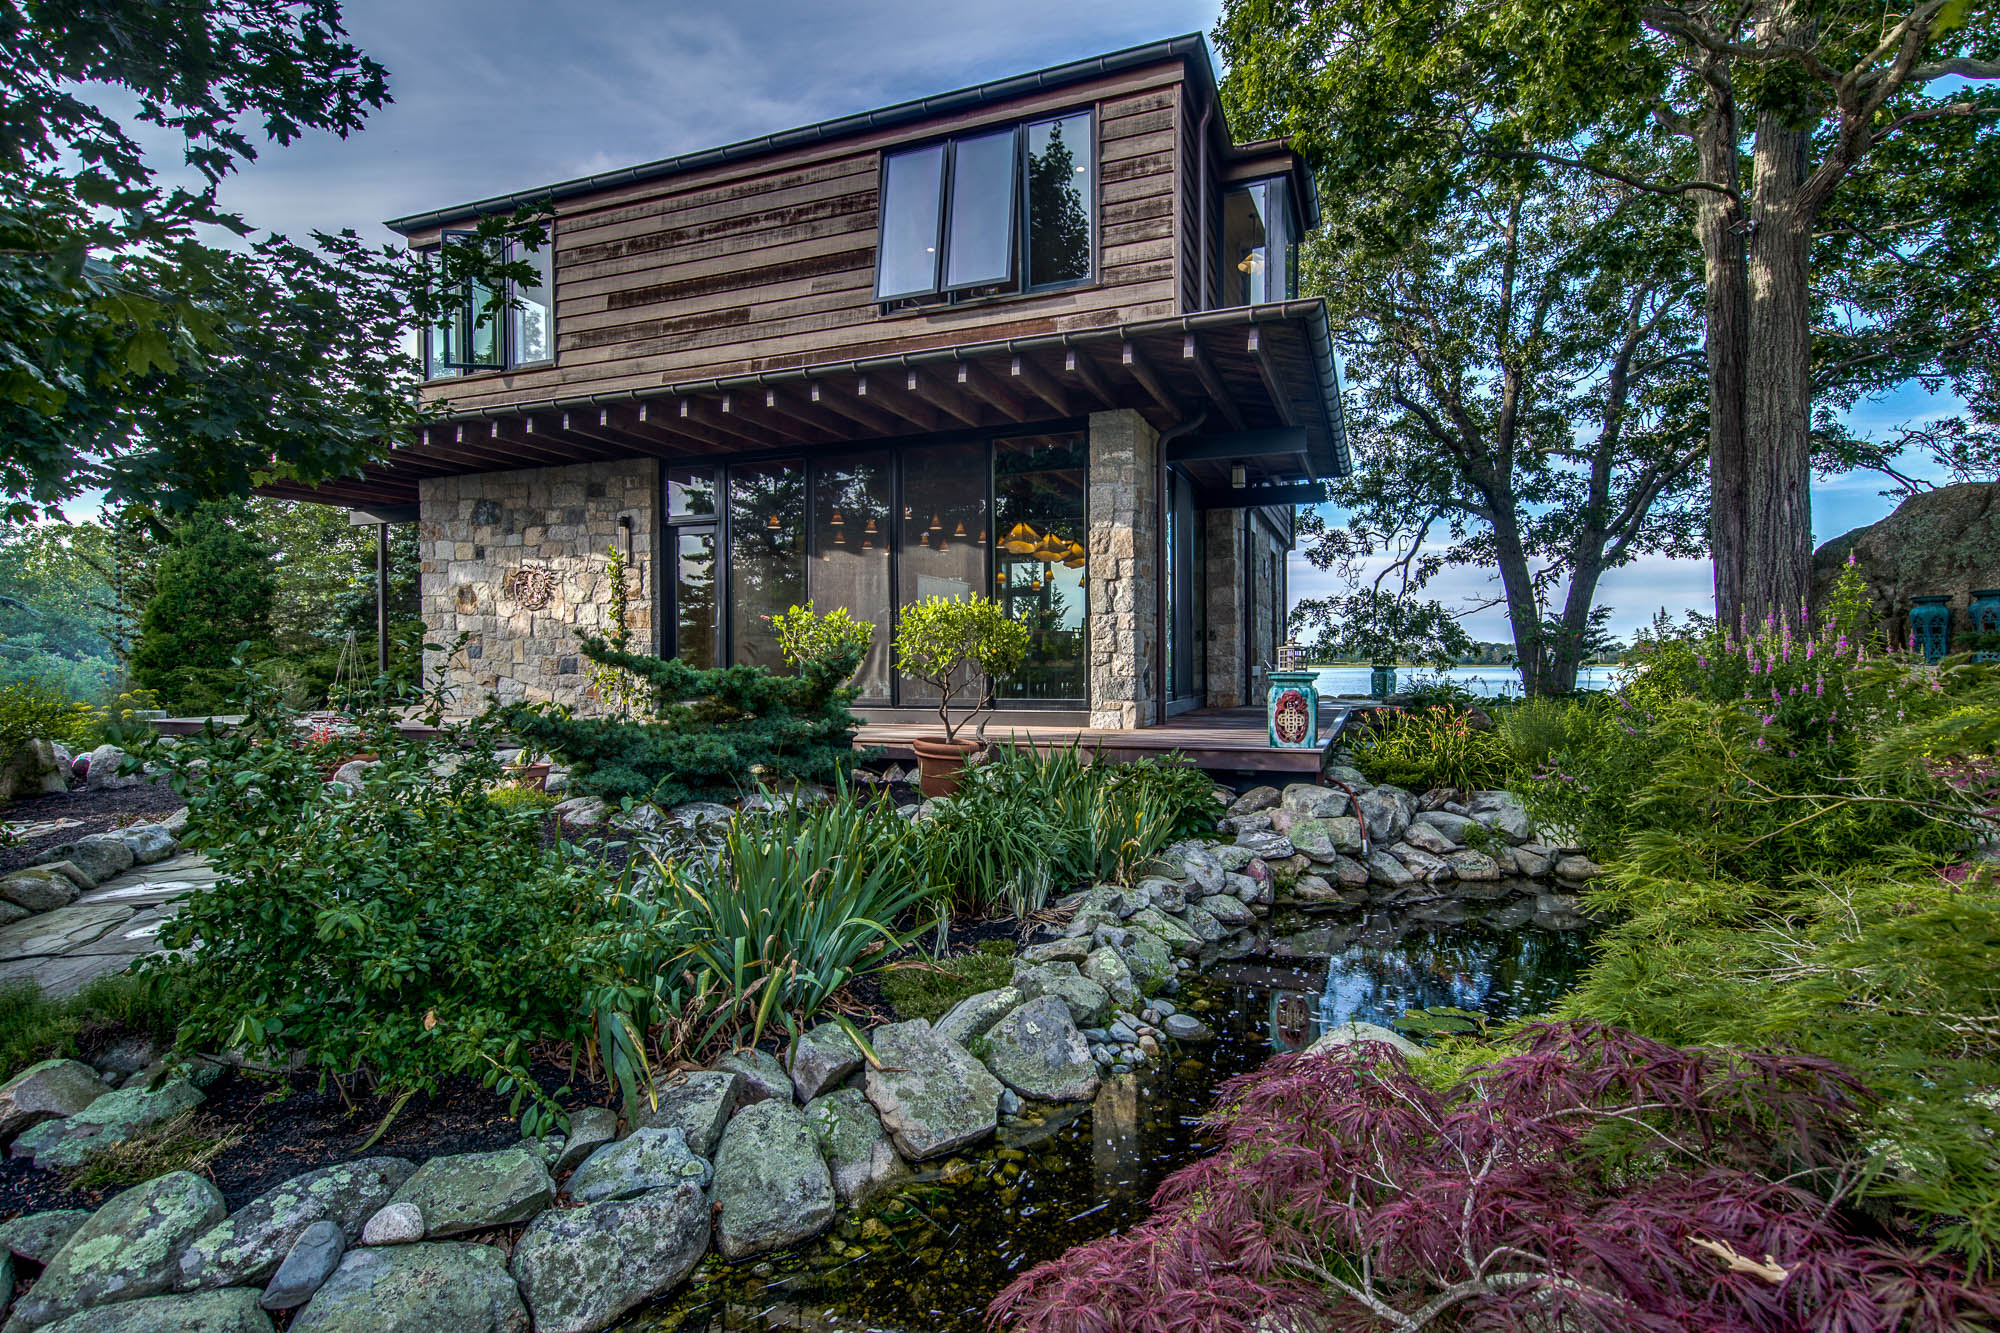 130 Gammons Rd, Cohasset, MA 02025